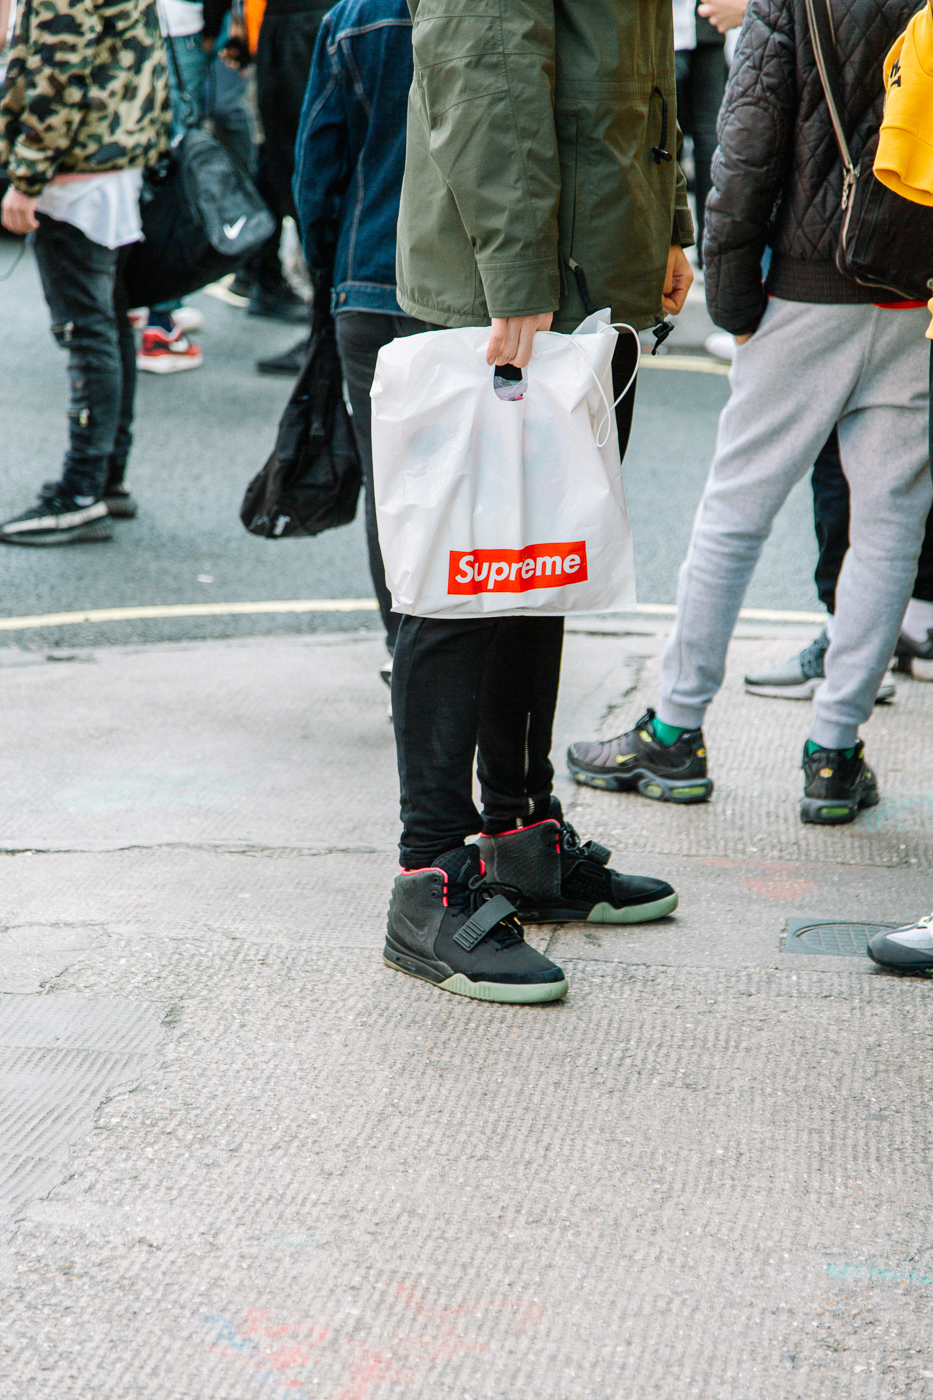 Supreme, pop up, drop, fashion, streetwear